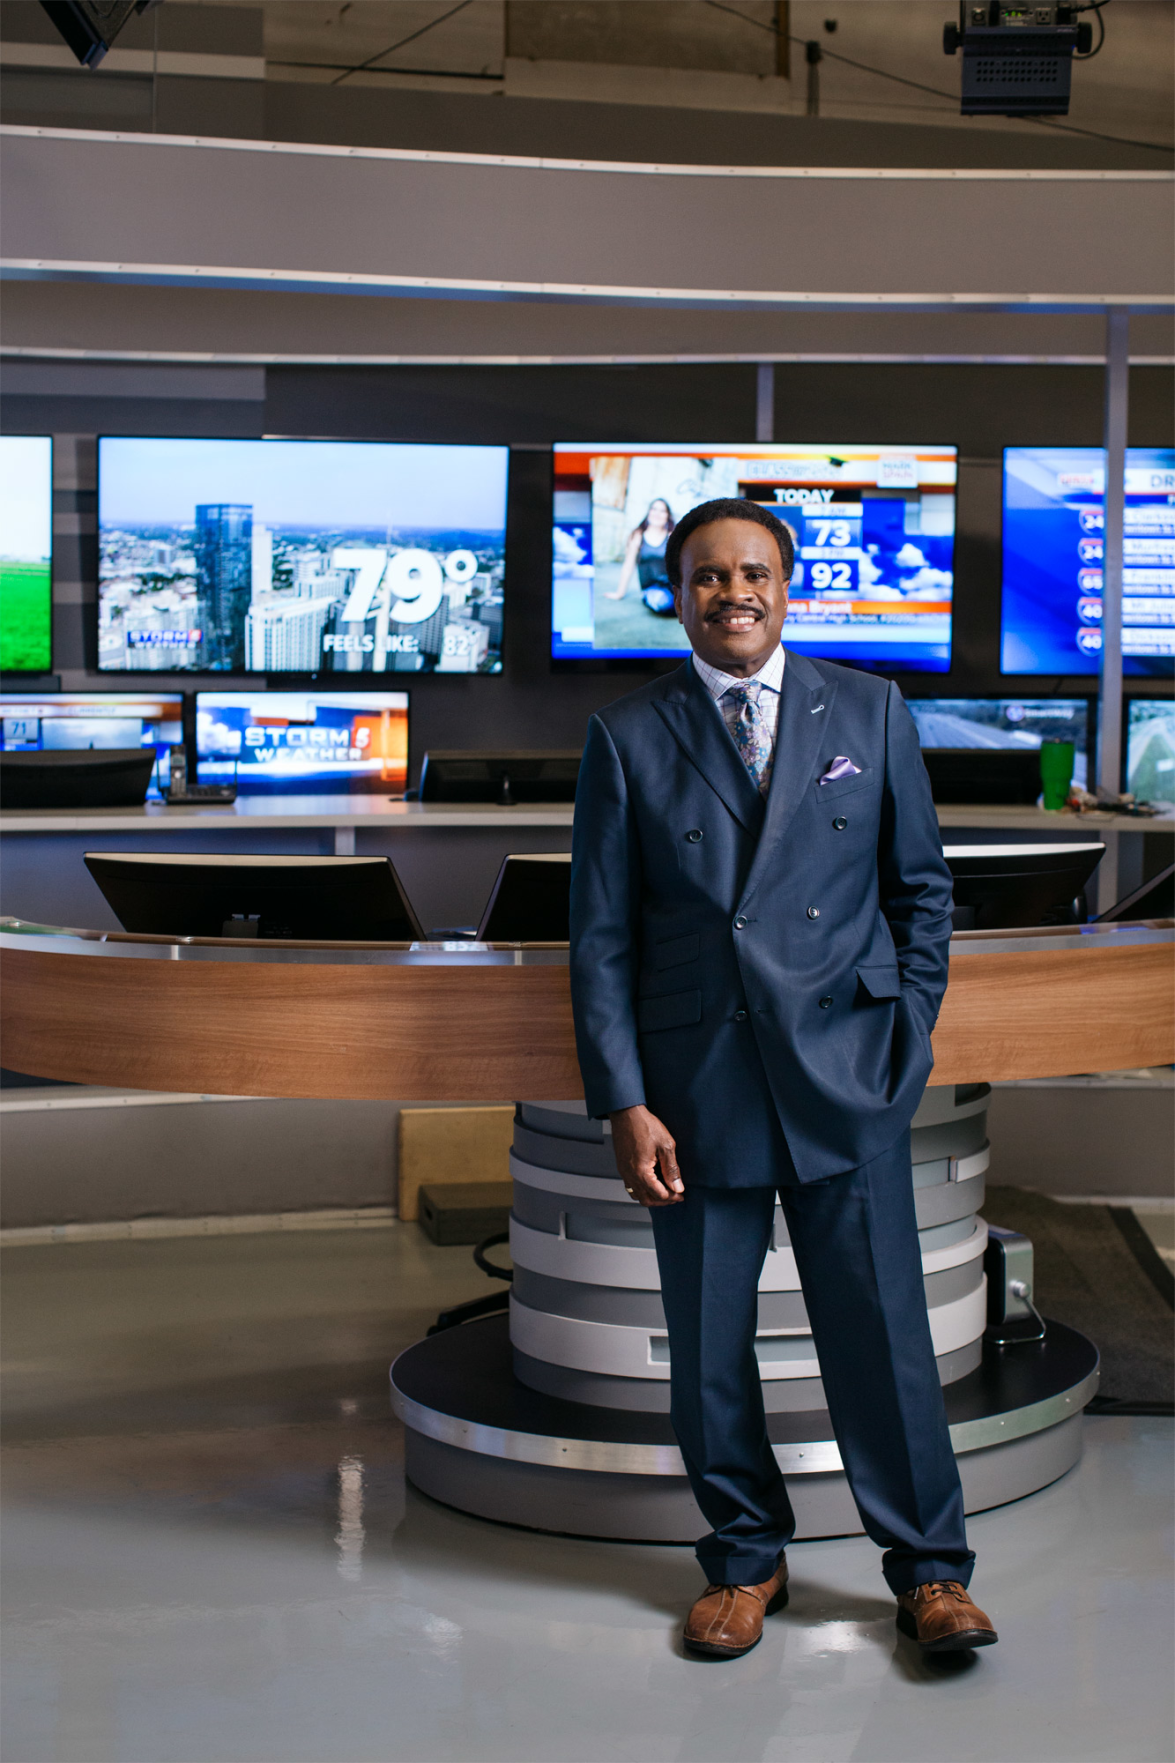 Behind the Scenes: In the Newsroom